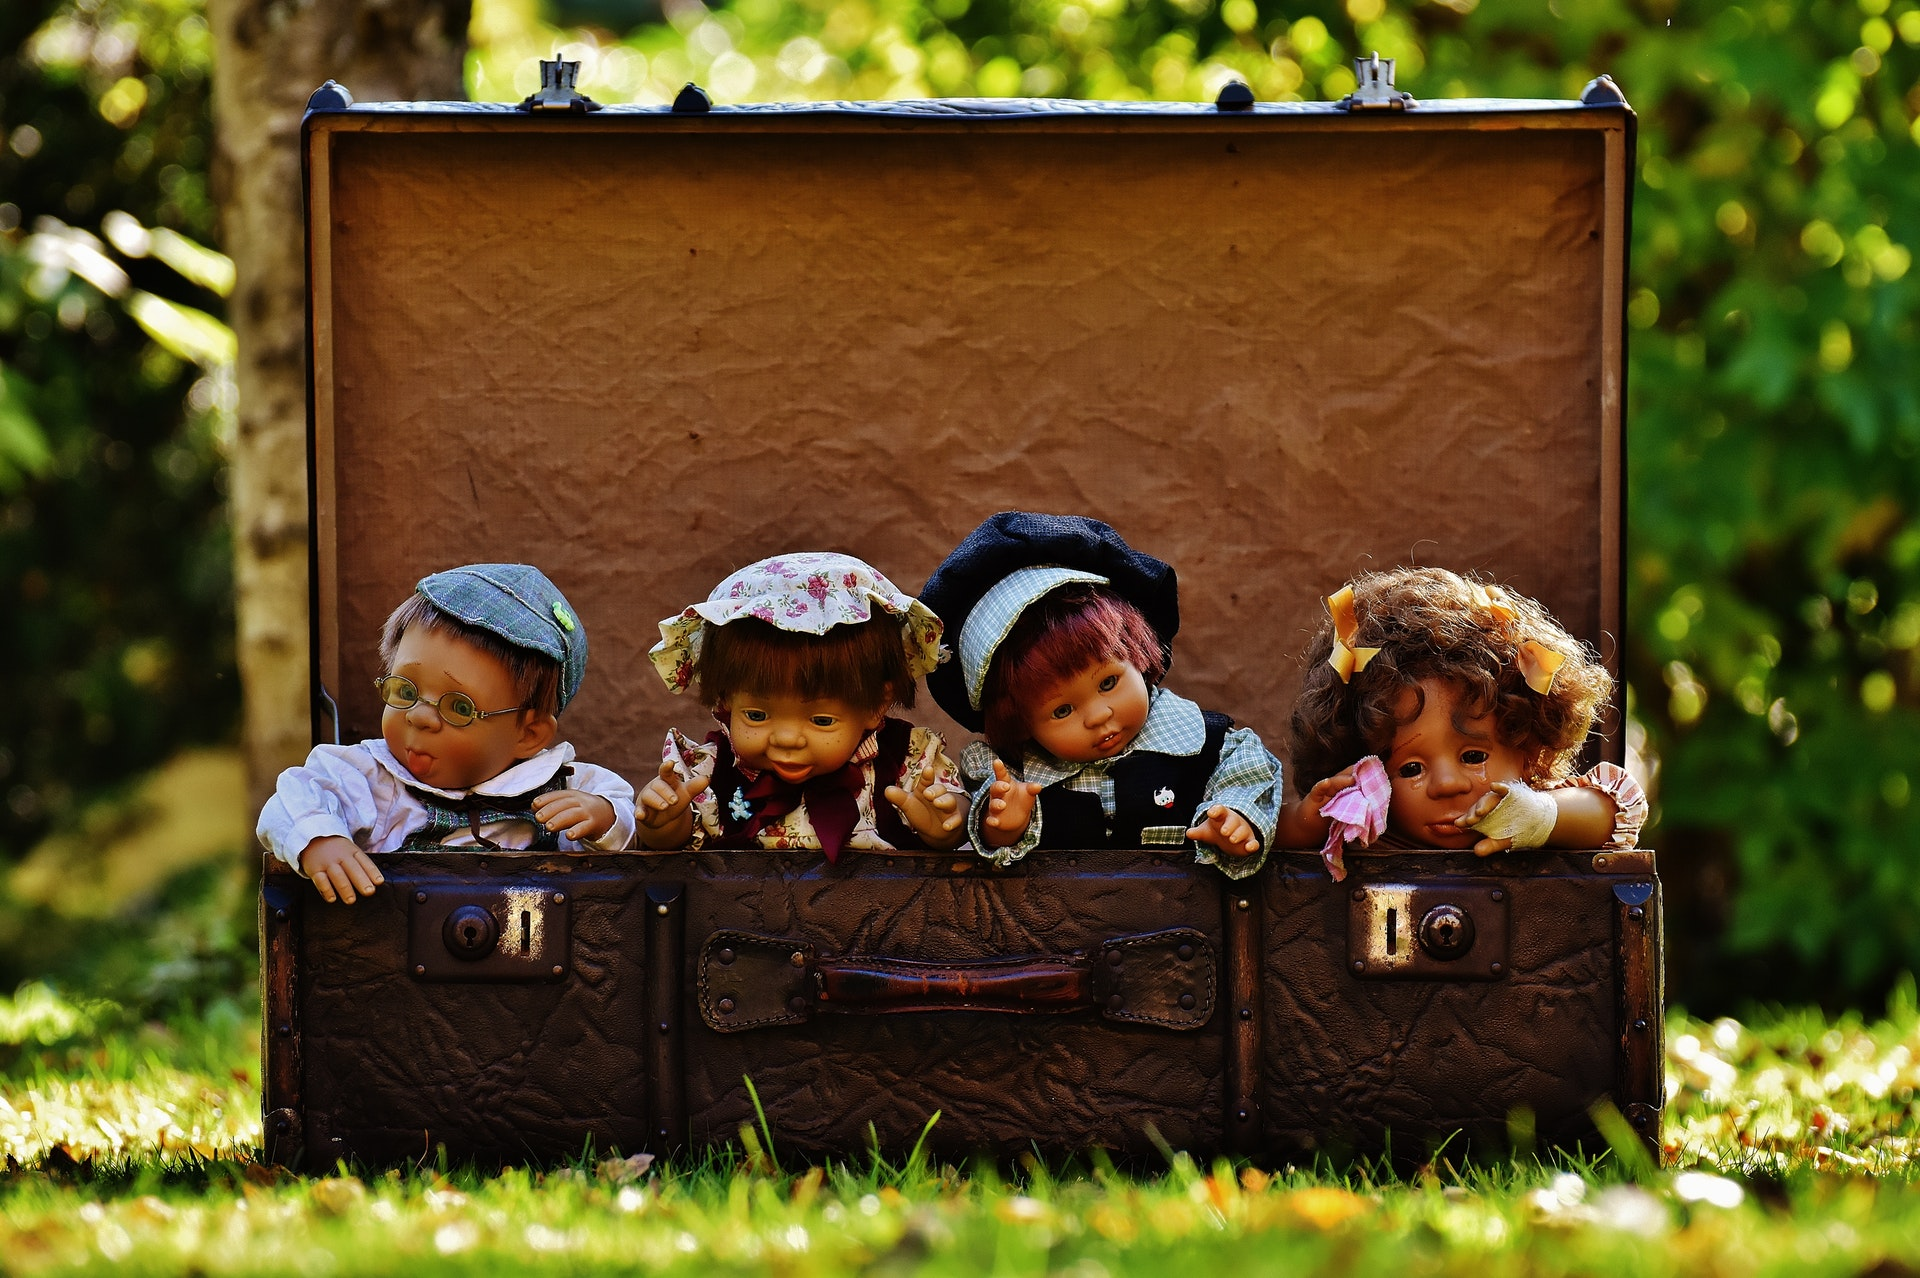 Traveling with Kids - 5 Helpful Tips When Traveling With Kids